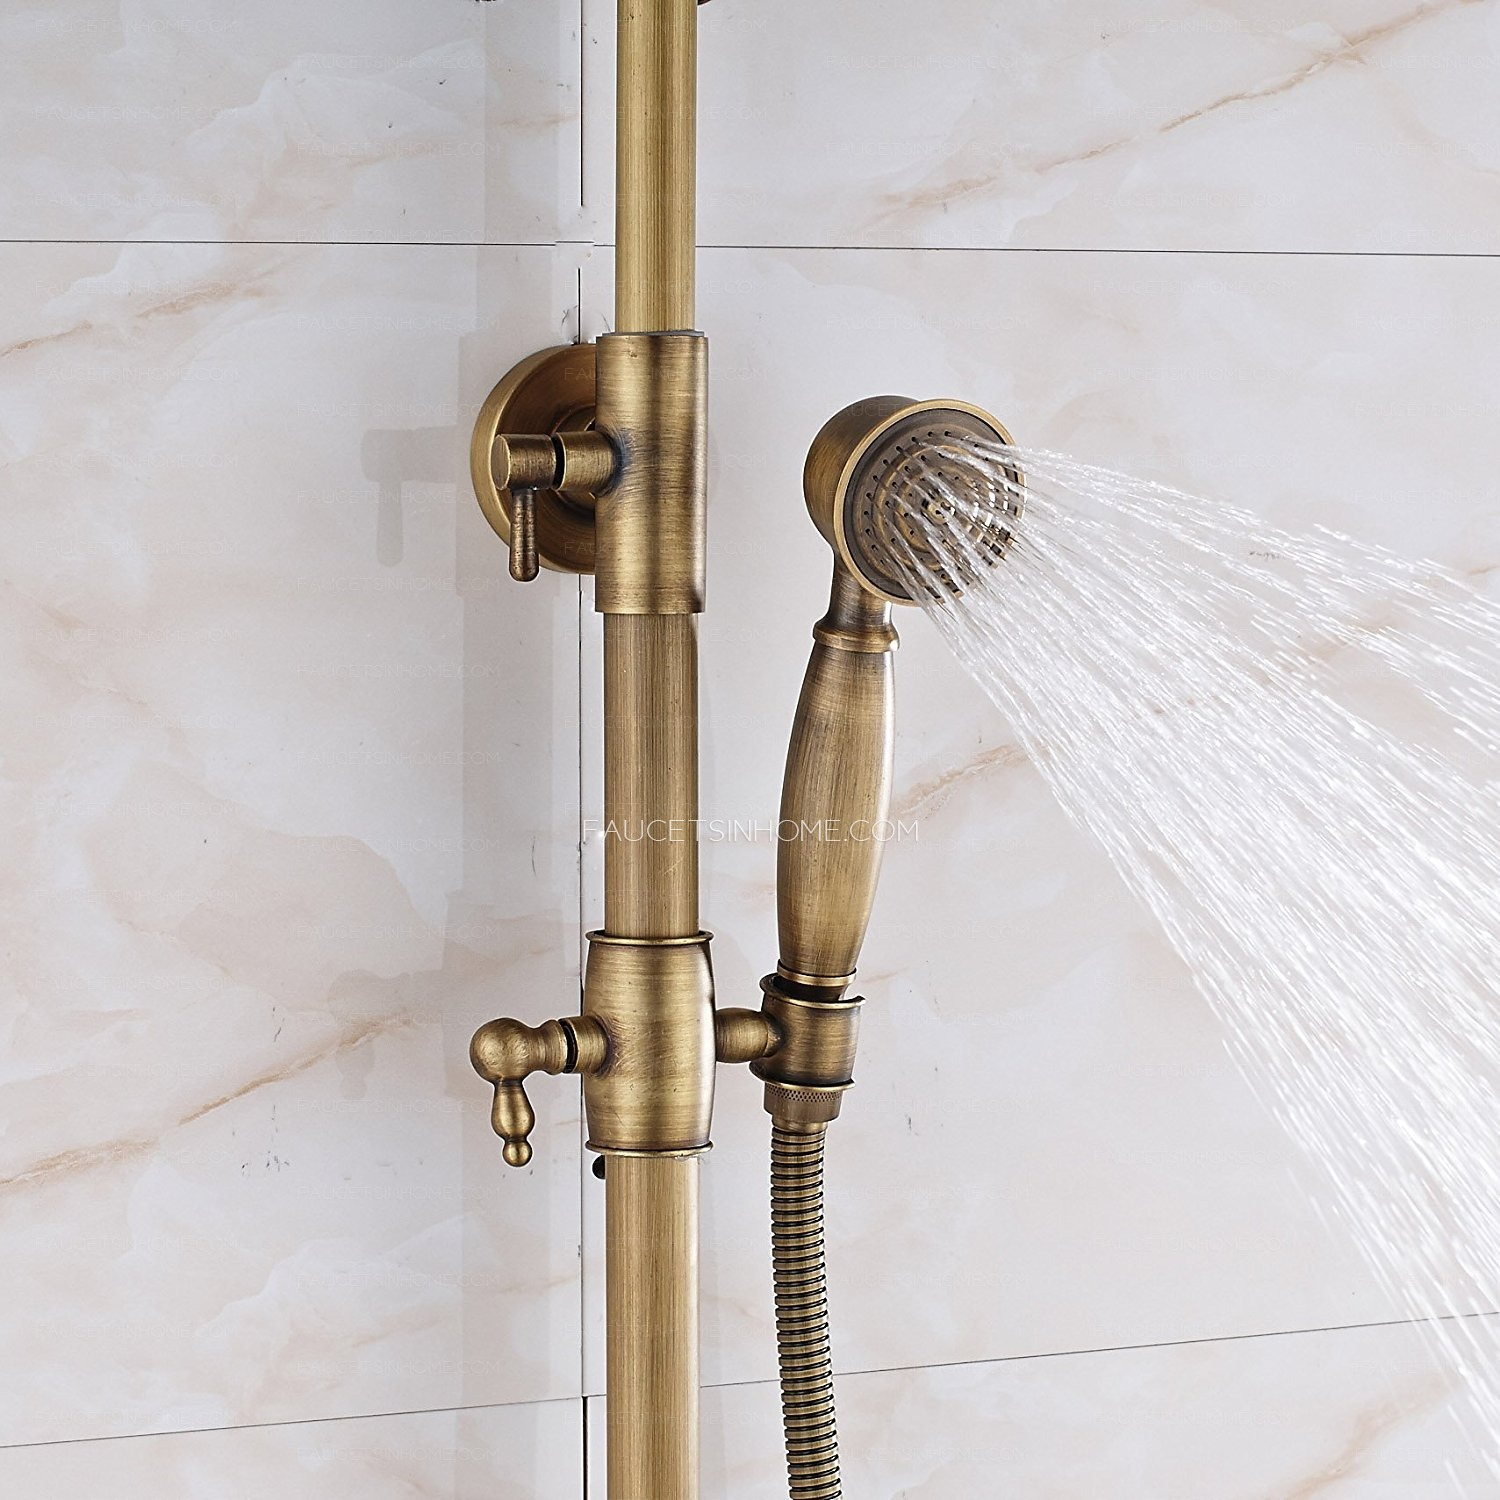 Antique Brass Rainfall Shower Faucet Brushed Gold Shower Head Fth1804211457132